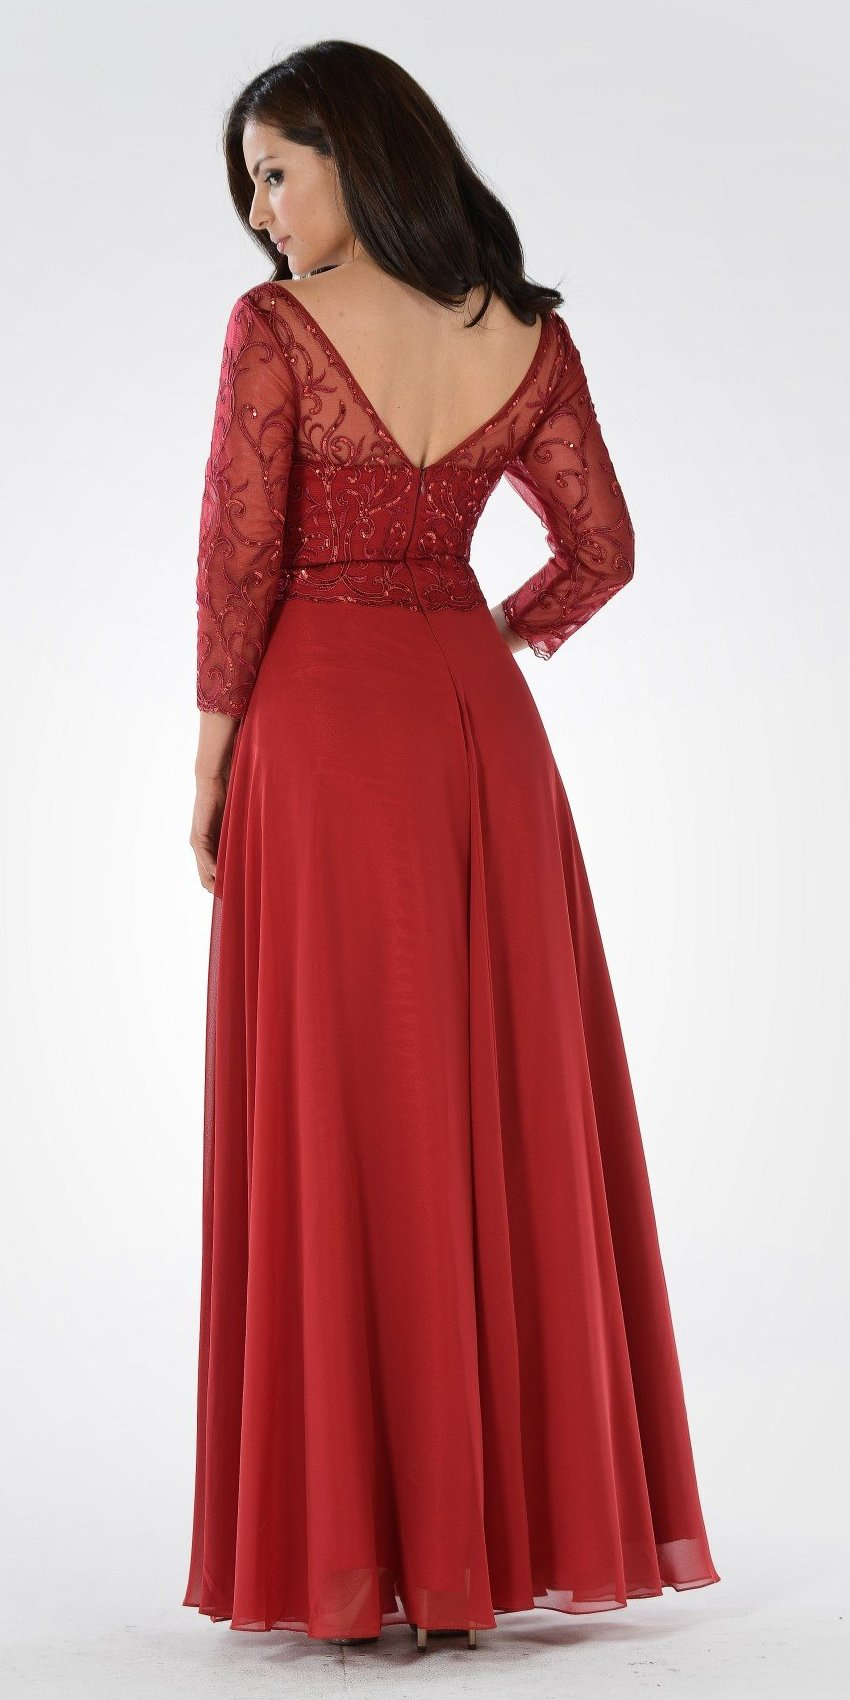 V-Neck Mid Sleeves Lace Top A-Line Formal Dress Long Burgundy